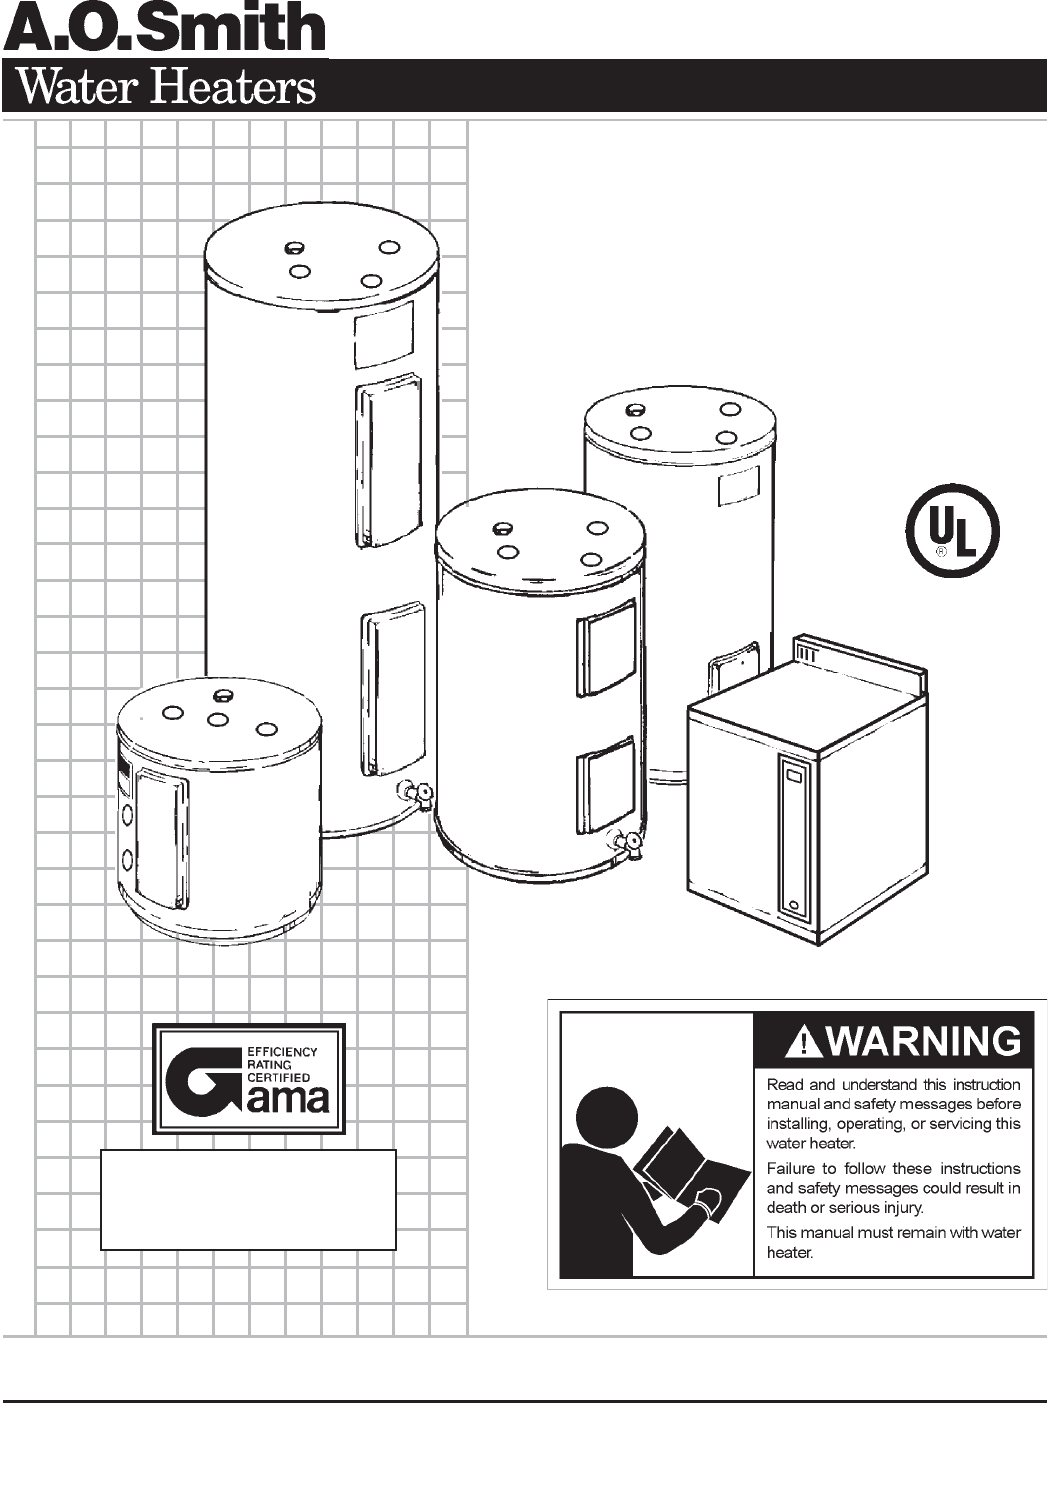 Ao Smith Water Heater Wiring Diagram Manual Guide